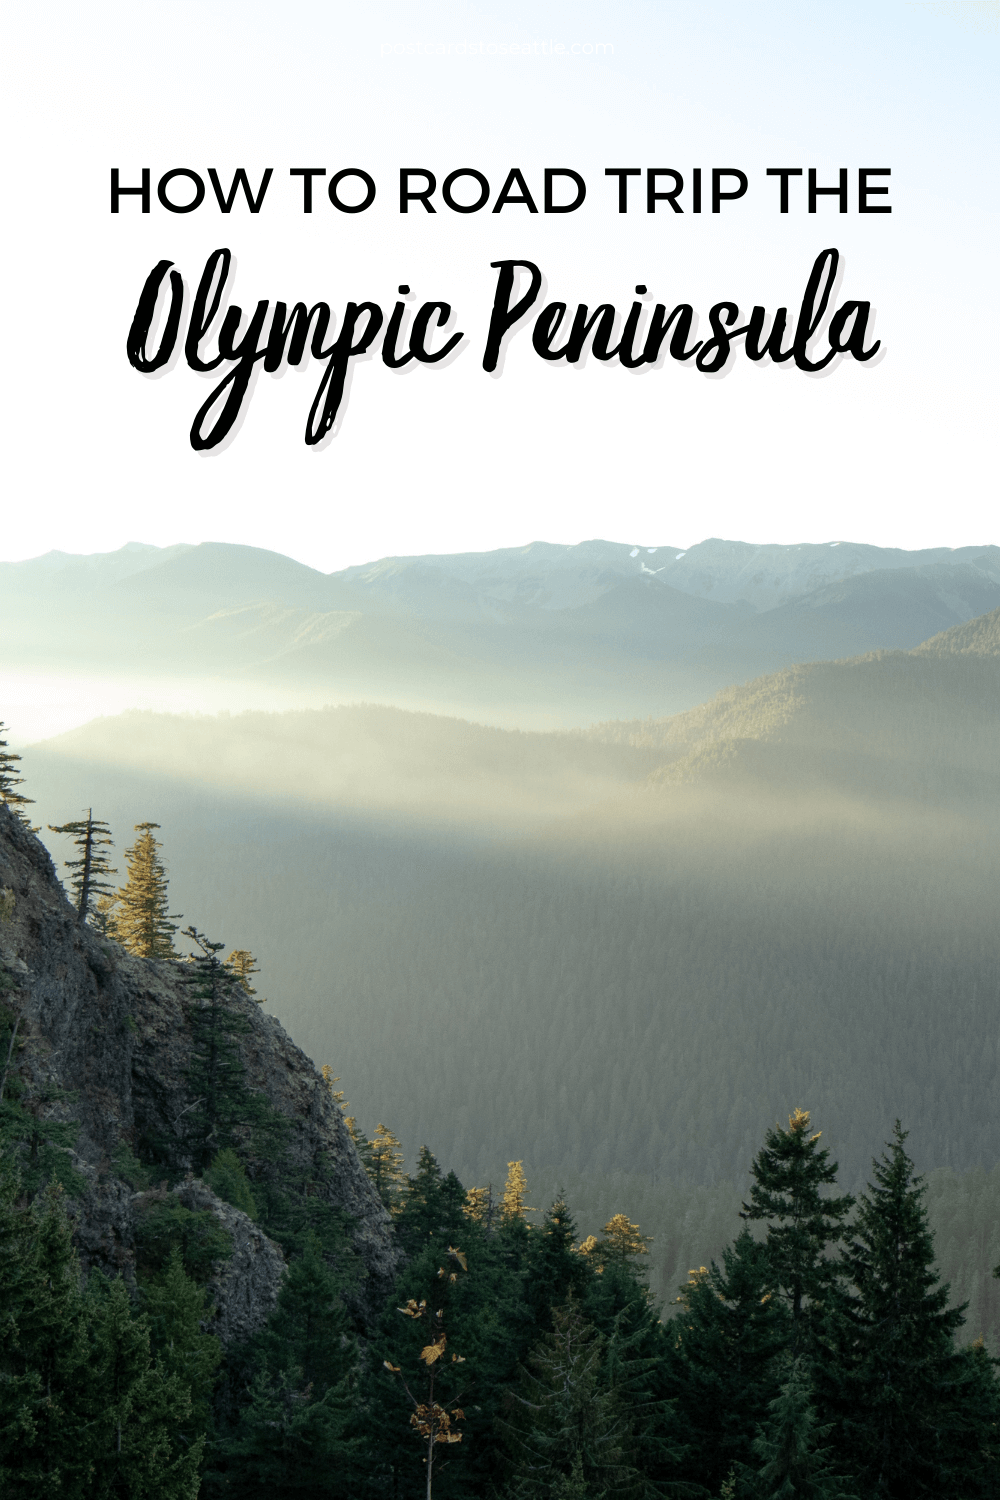 The Best Stops on a 3-Day Olympic Peninsula Road Trip